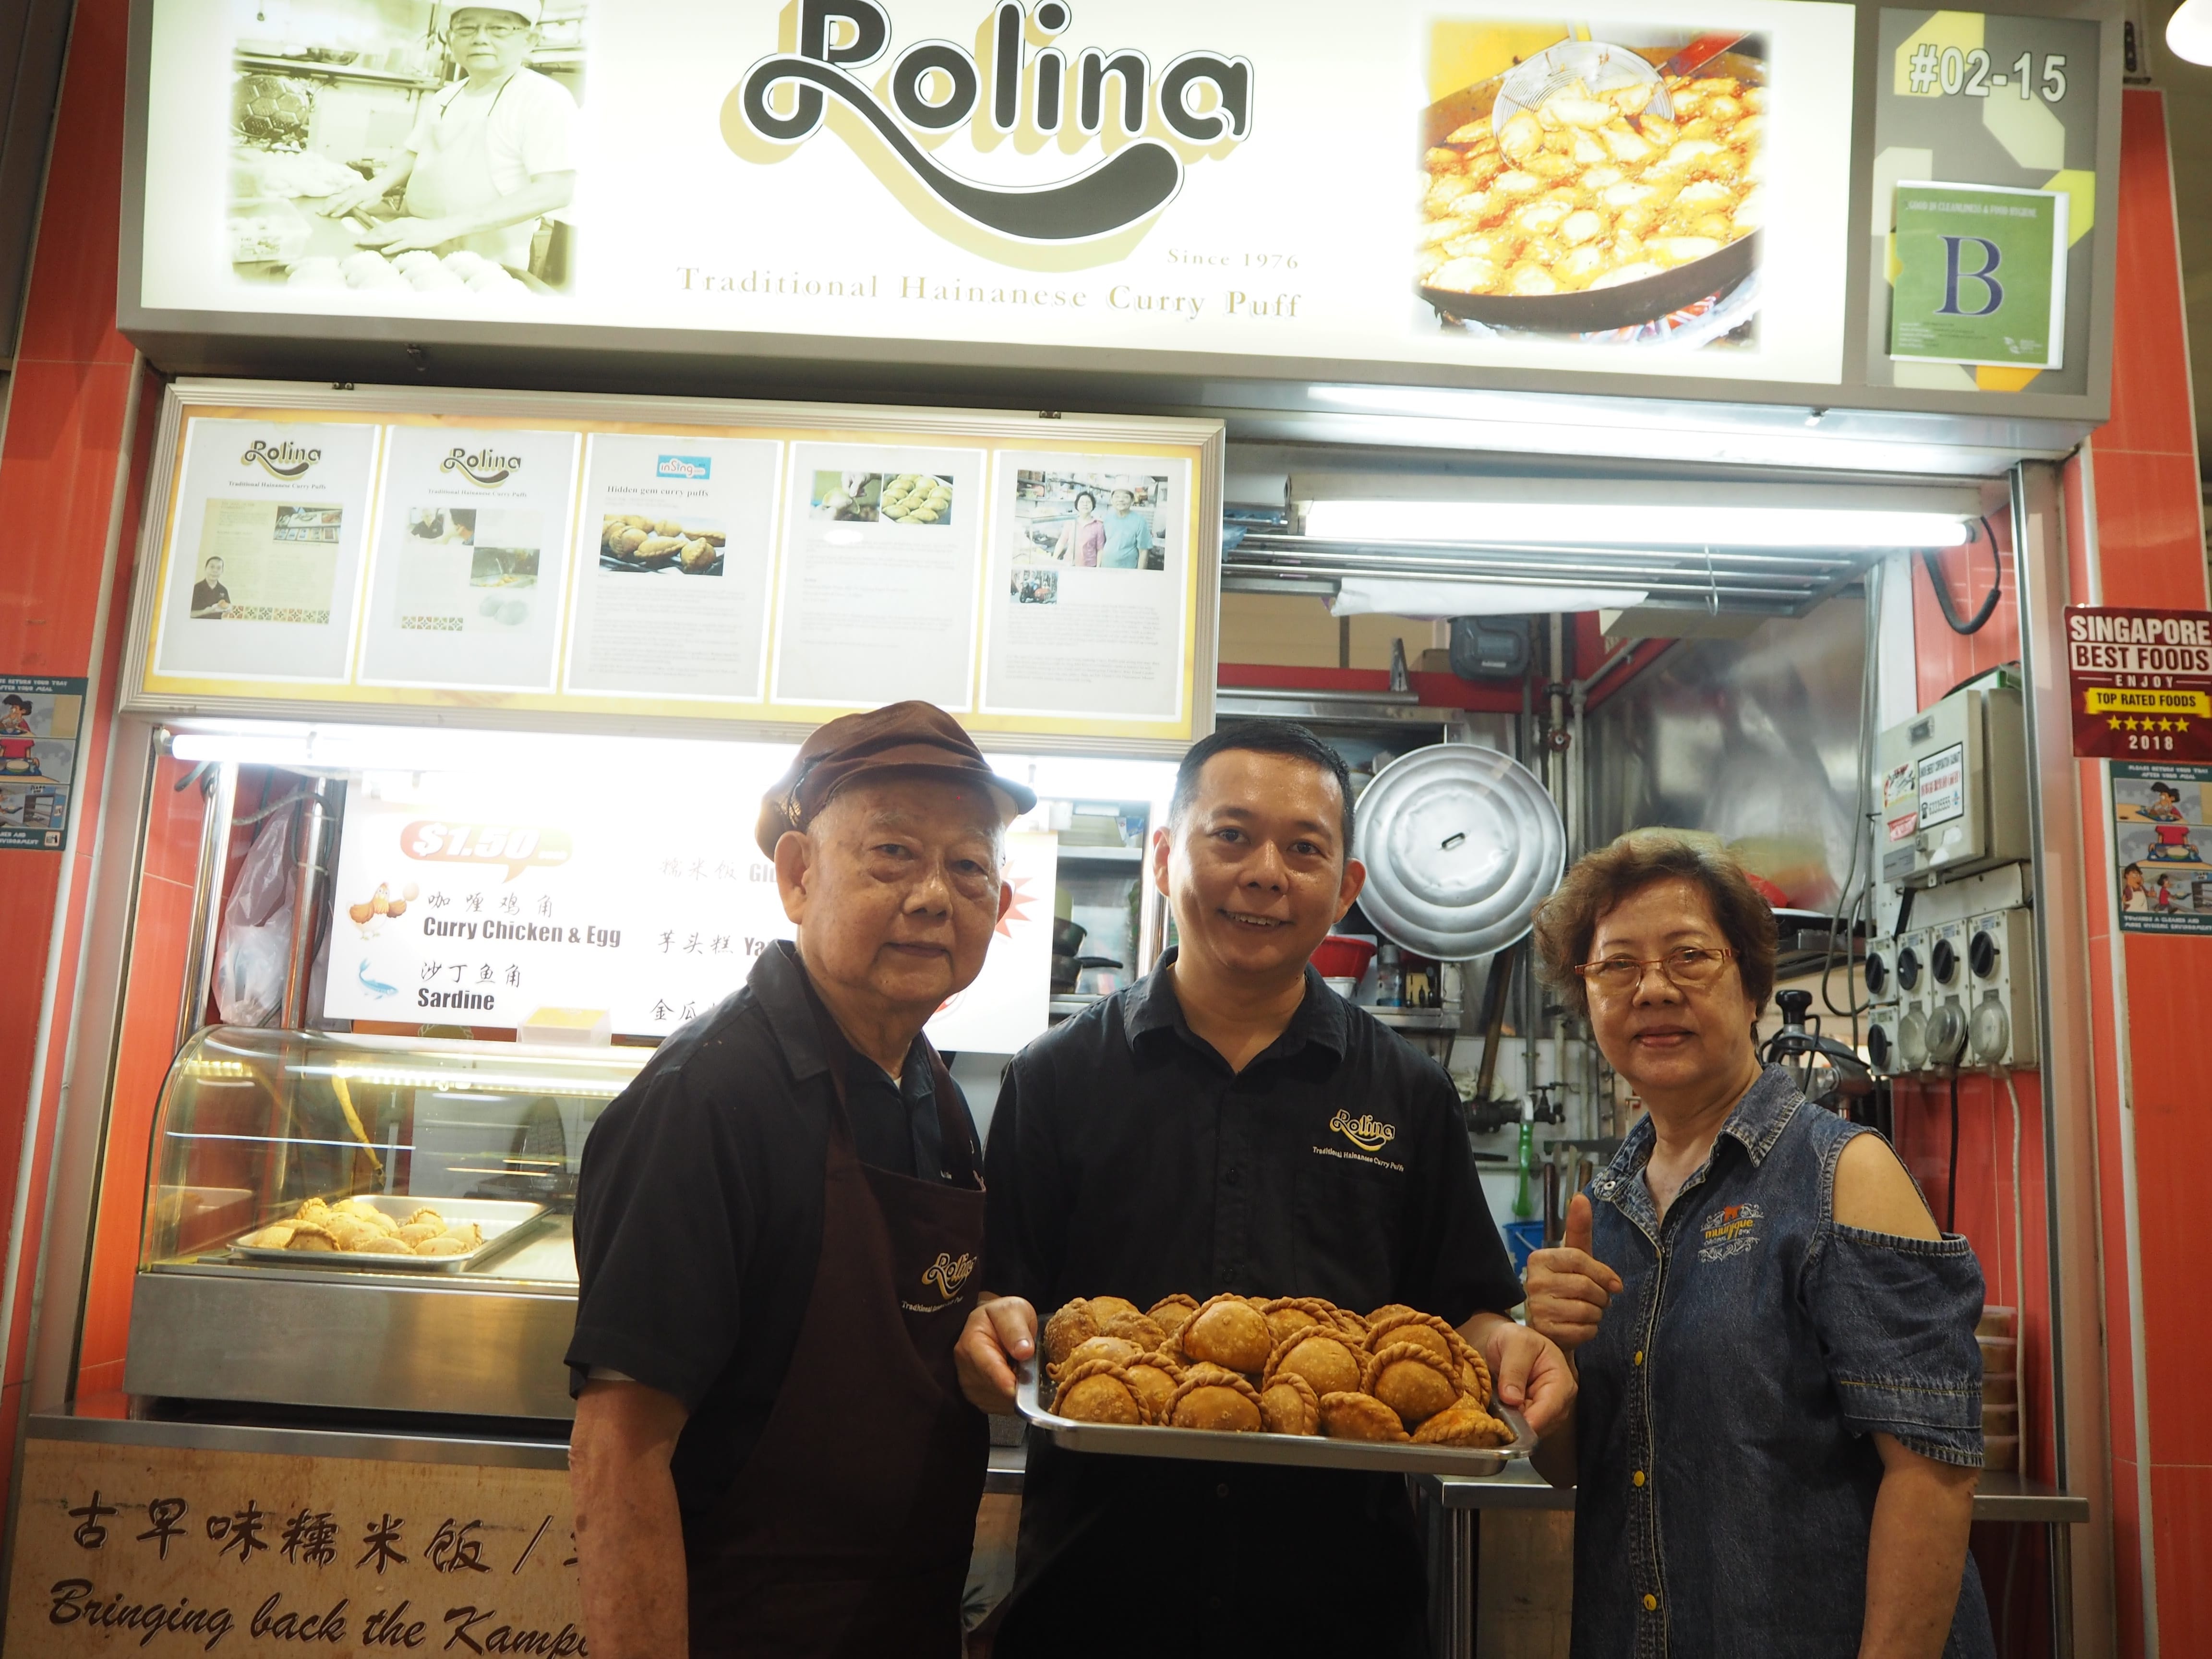 The Tham family has been running Rolina Traditional Hainanese Curry Puff for more than 50 years. (Photo: Kenneth Goh)